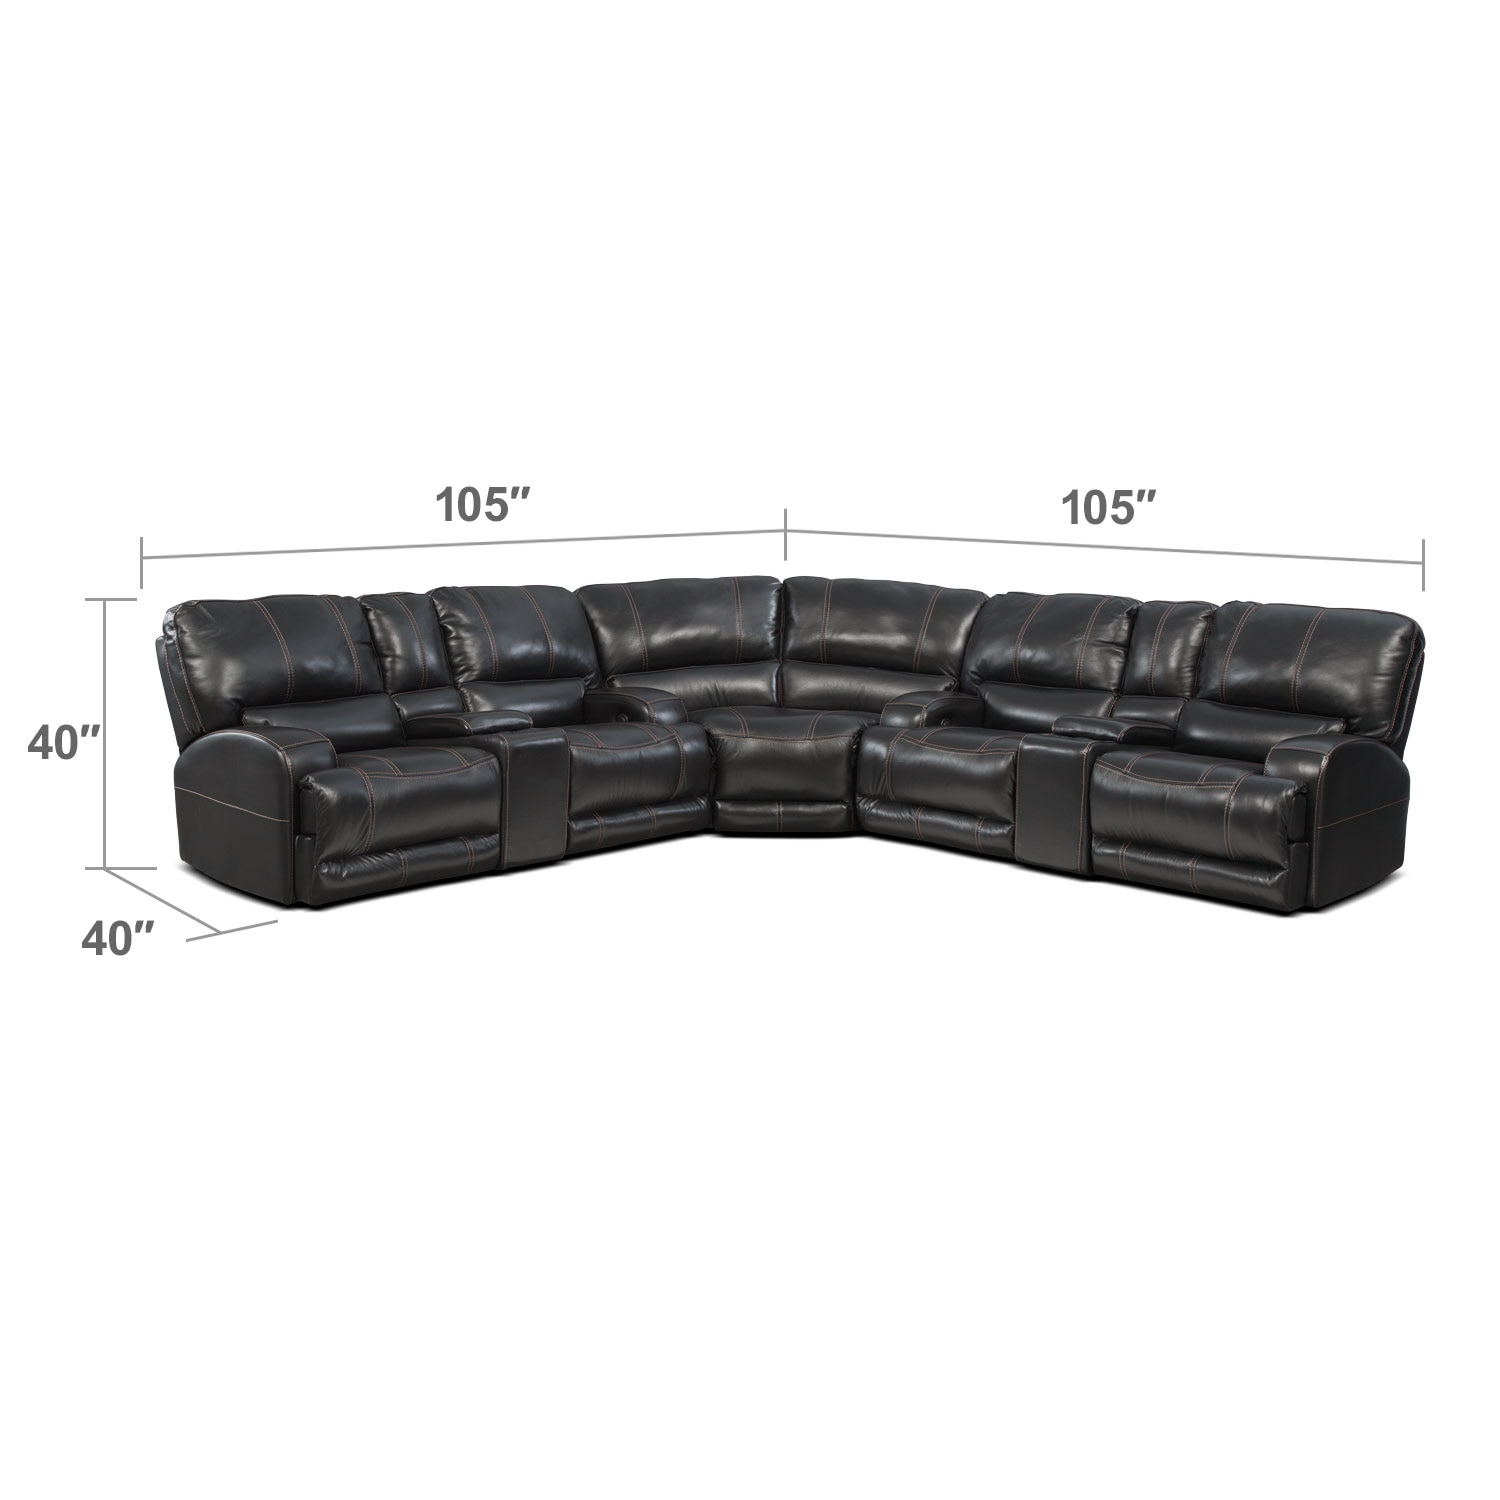 Living Room Furniture - Barton 3-Piece Power Reclining Sectional with 2 Consoles - Black